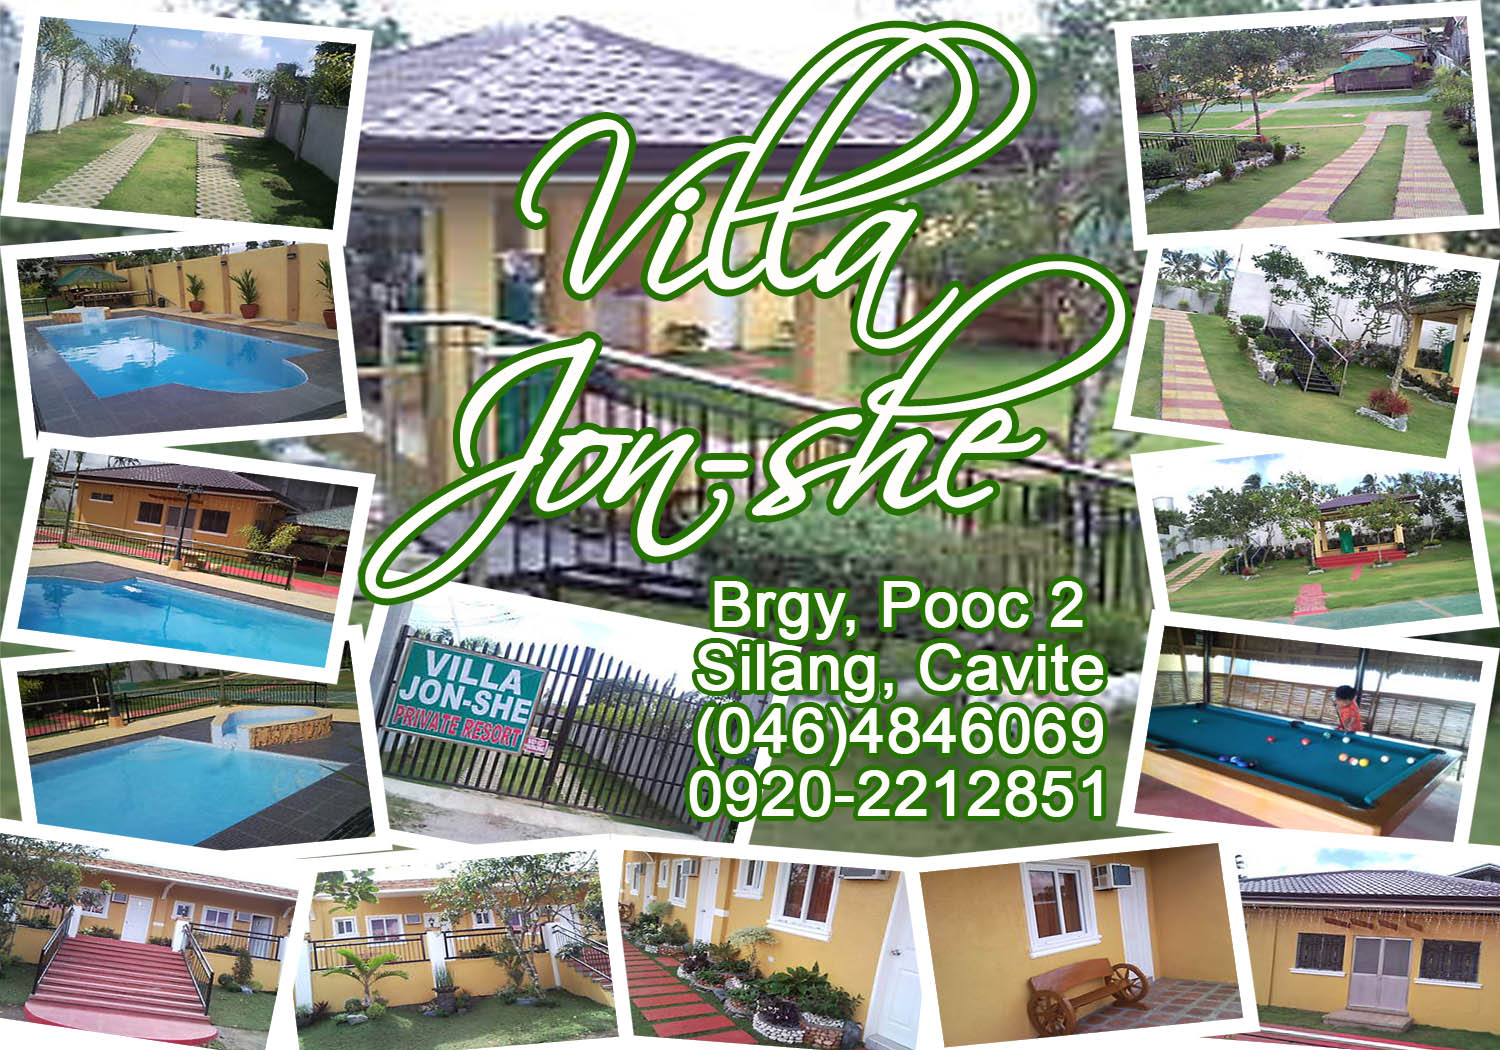 Villa jon she private resorts Private swimming pool for rent in cavite